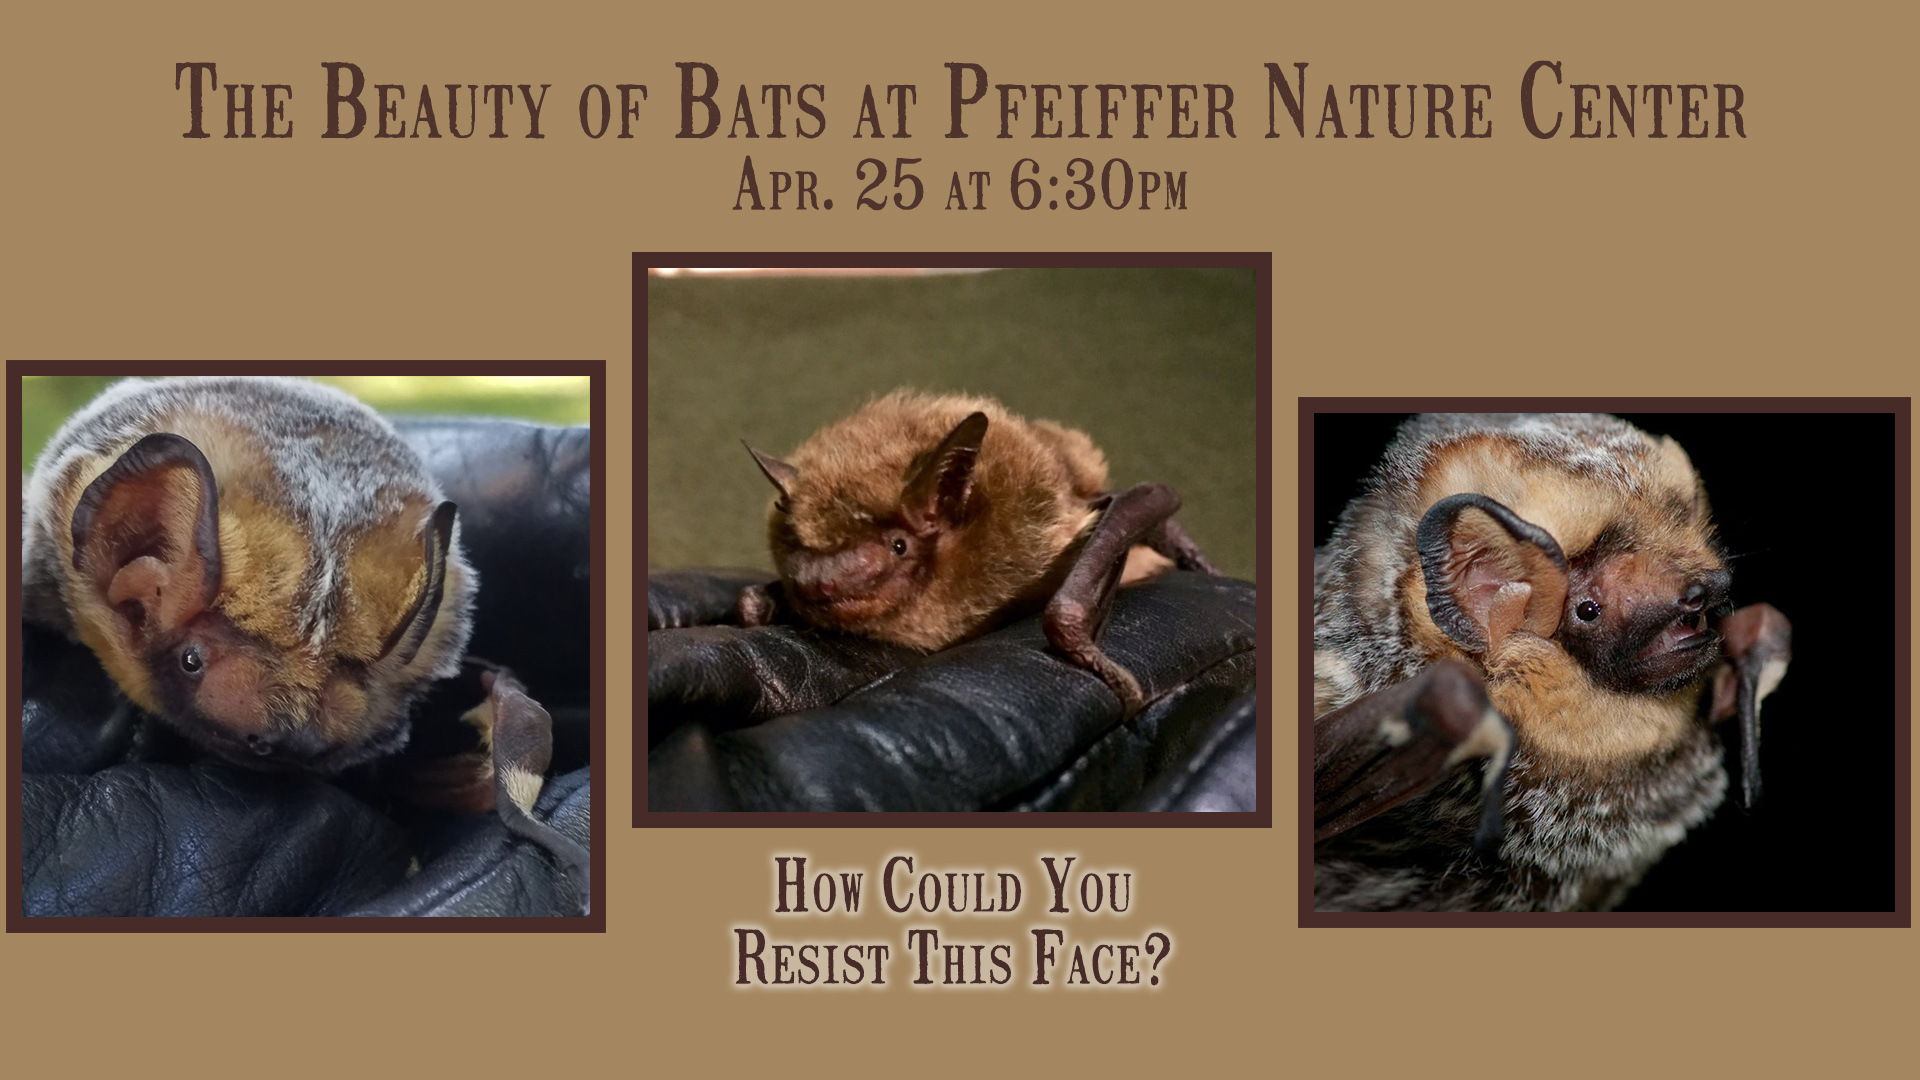 The Beauty of Bats with Pfeiffer Nature Center